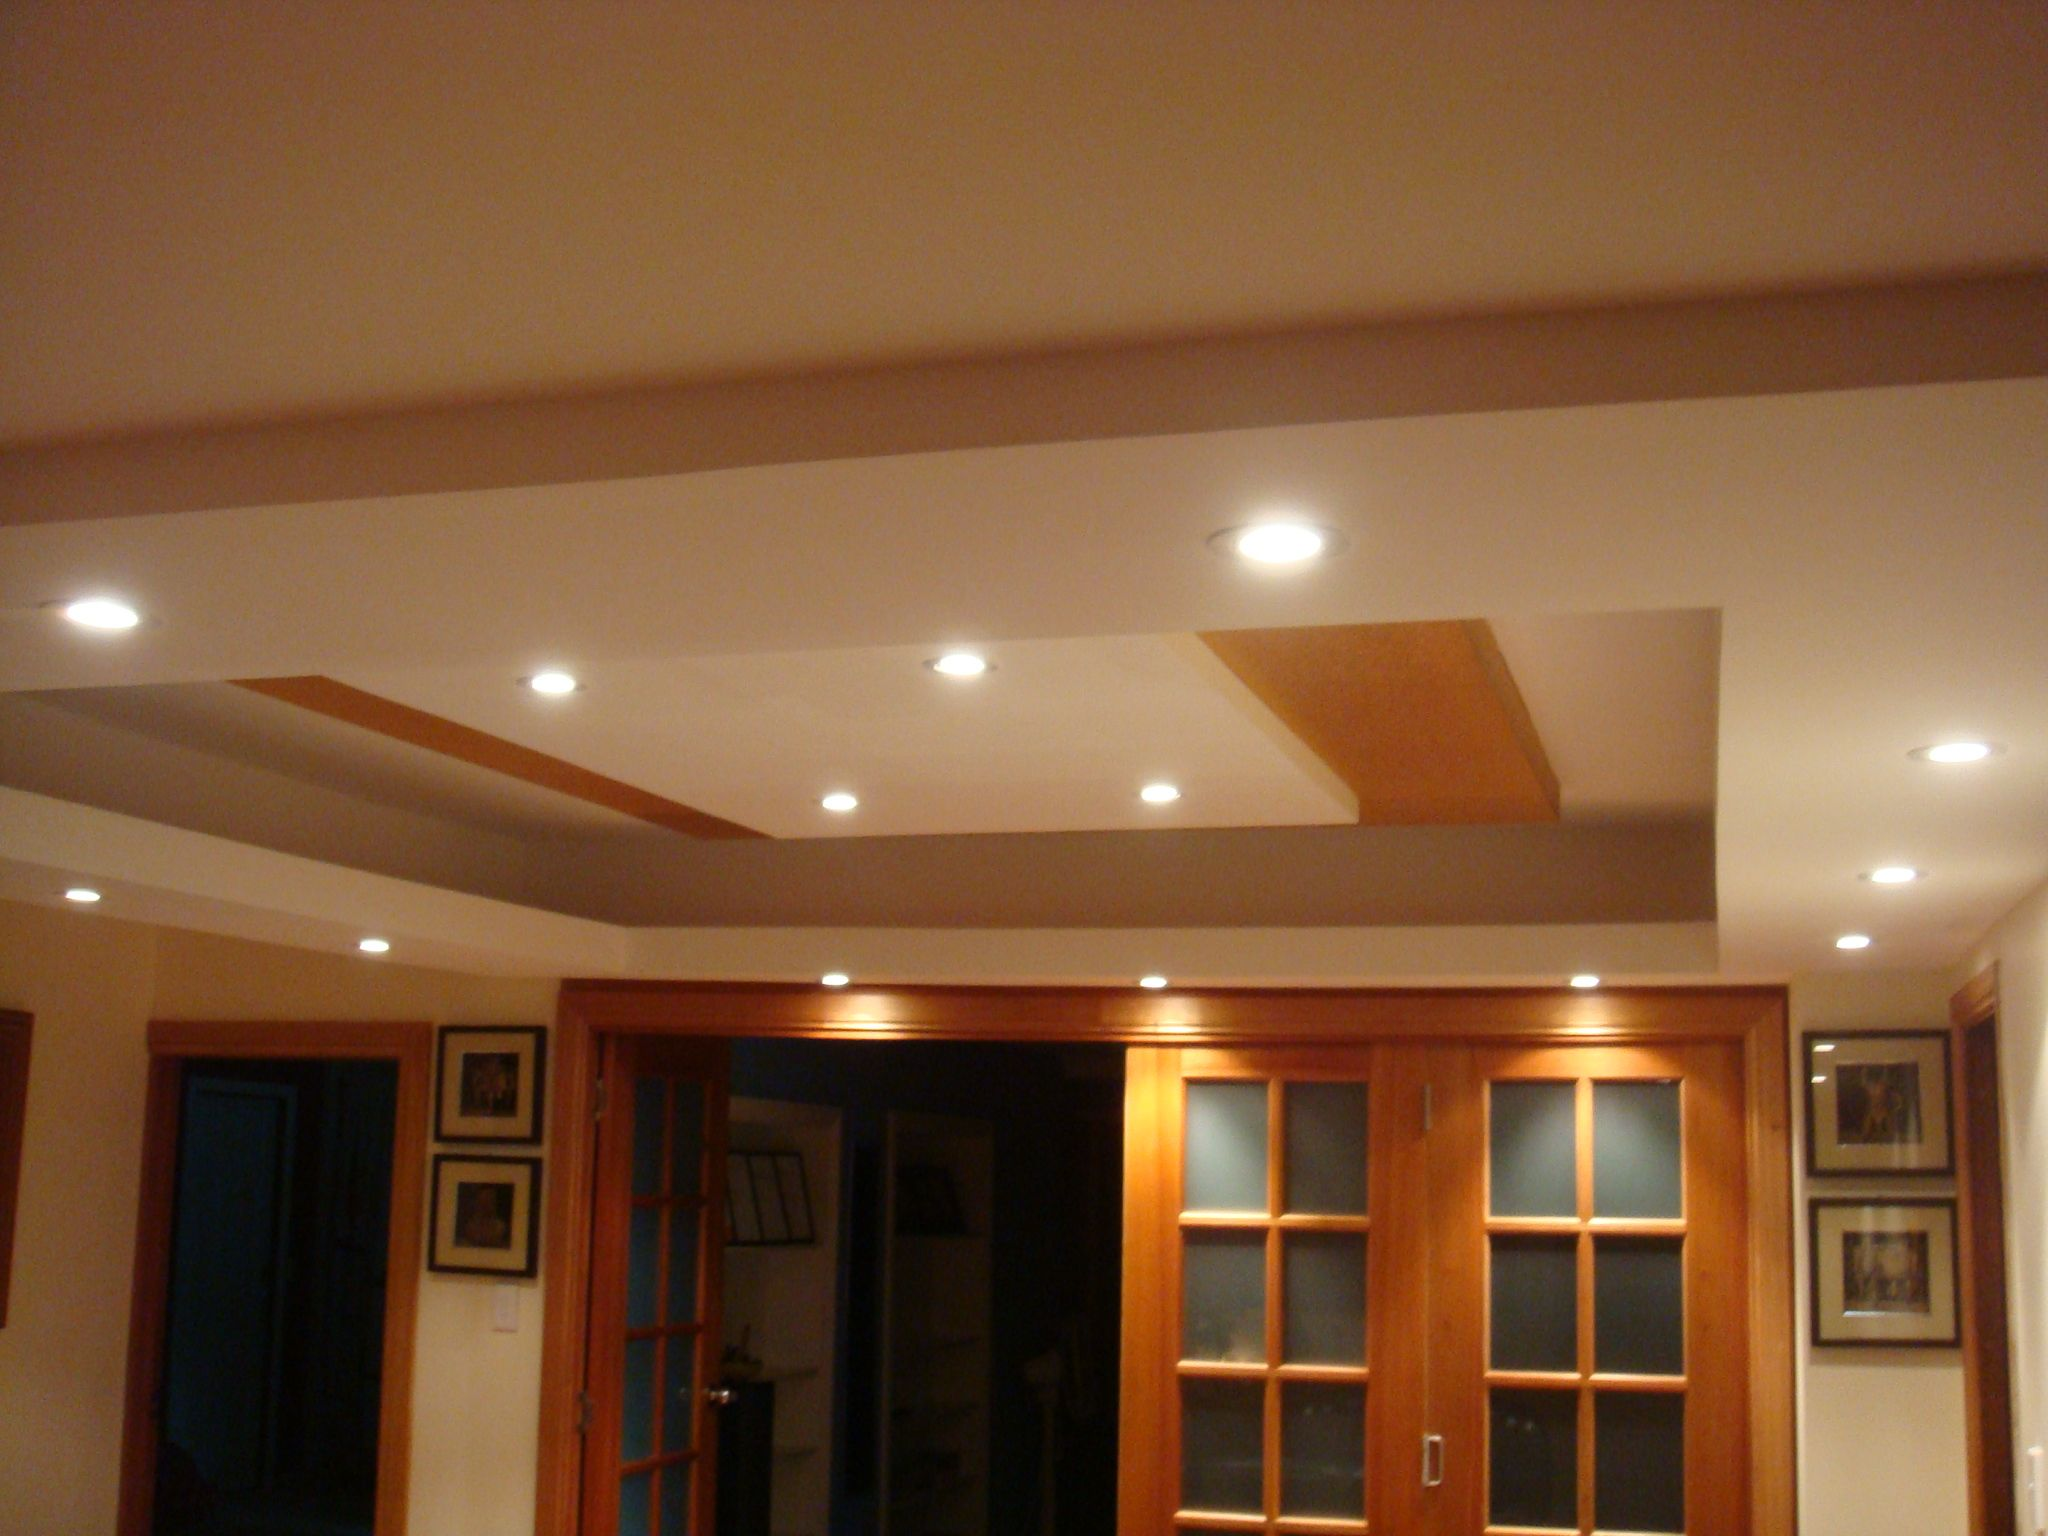 Latest gypsum ceiling designs hall image vectronstudios for Room roof design images